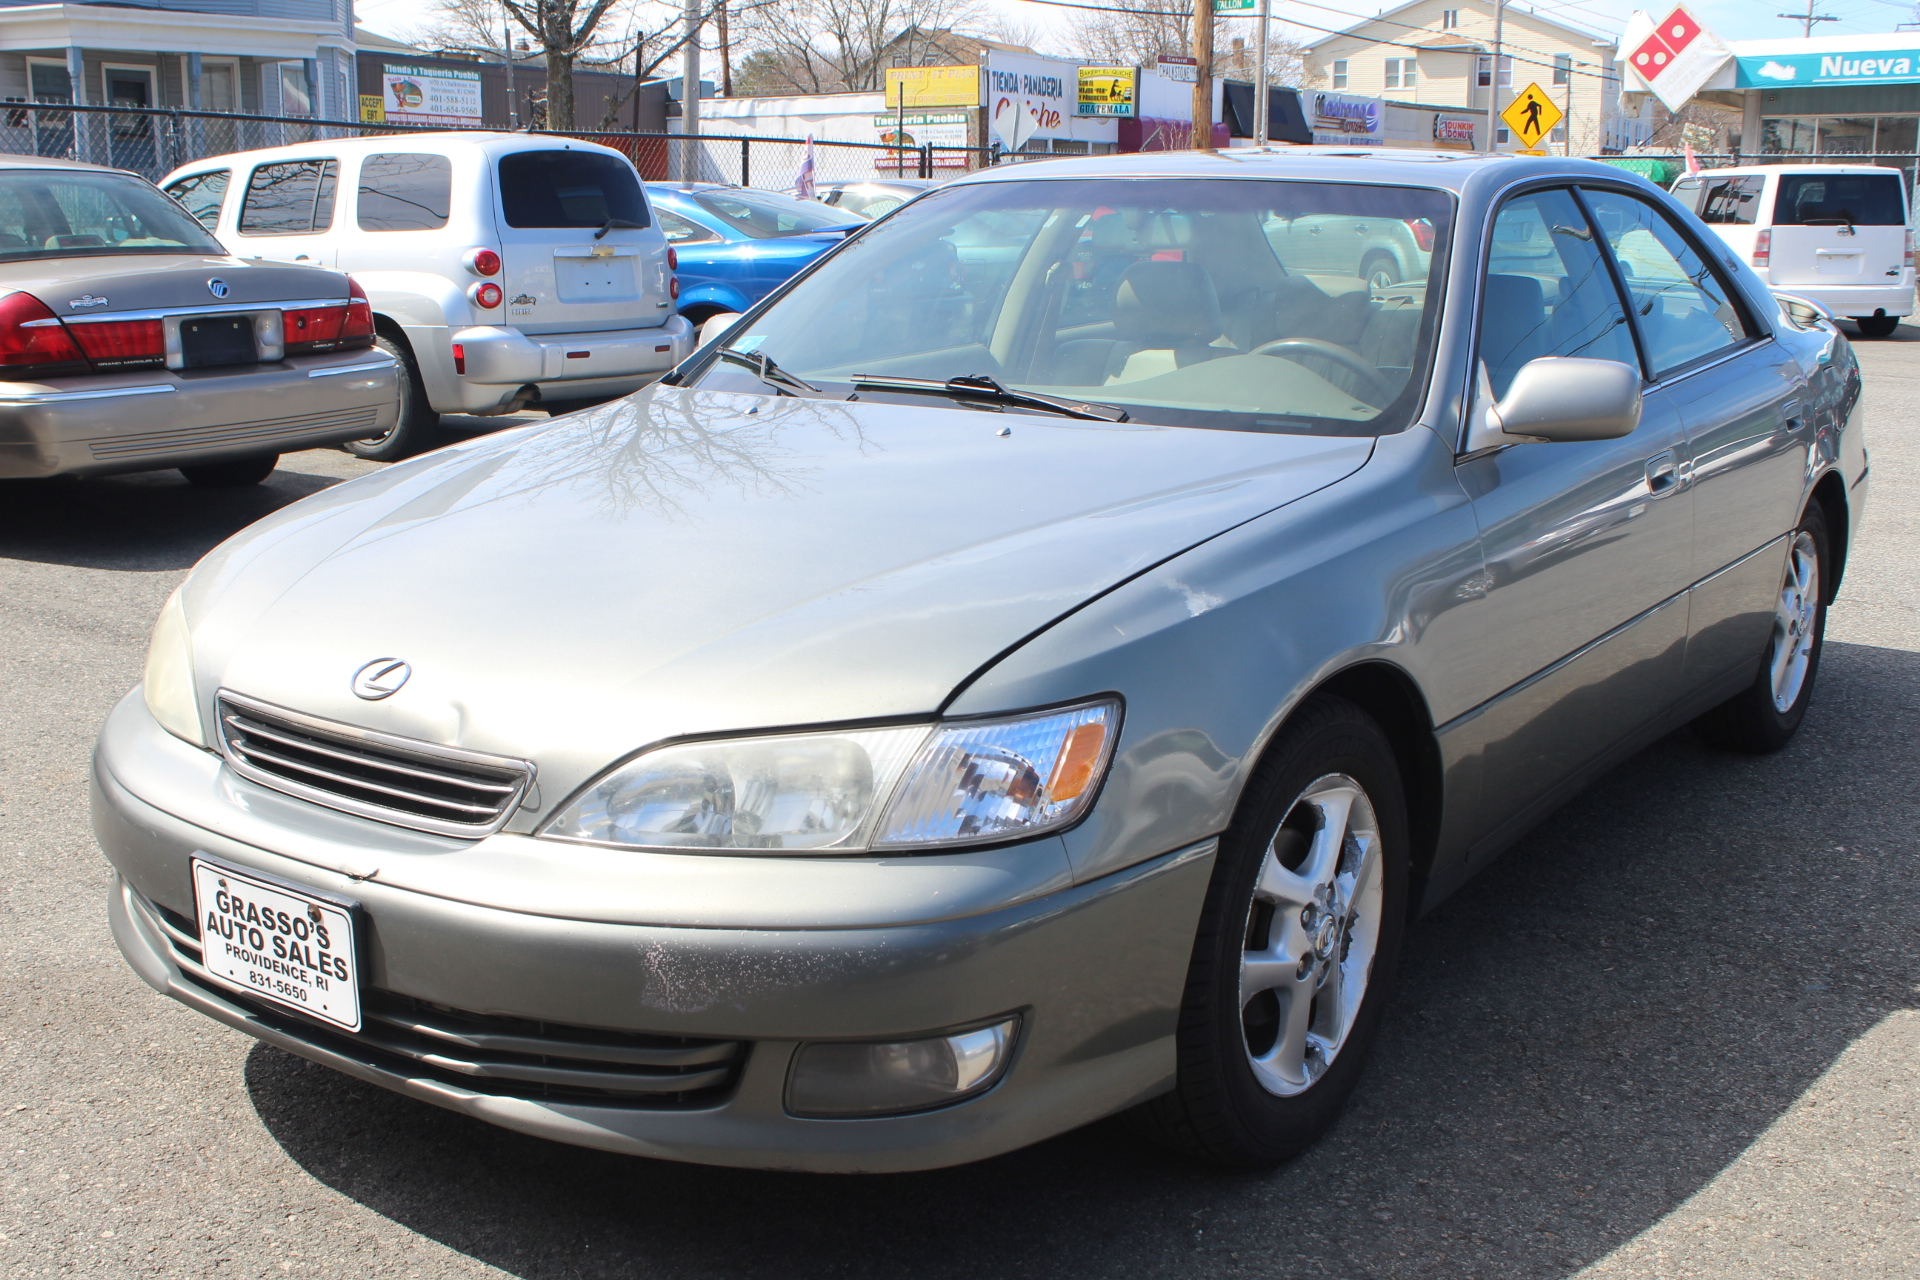 2000 Lexus ES 300 4dr Sdn ONE OWNER  NO ACCIDENTS  NON SMOKER  REMOTE STARTER  COMPLETELY SERV